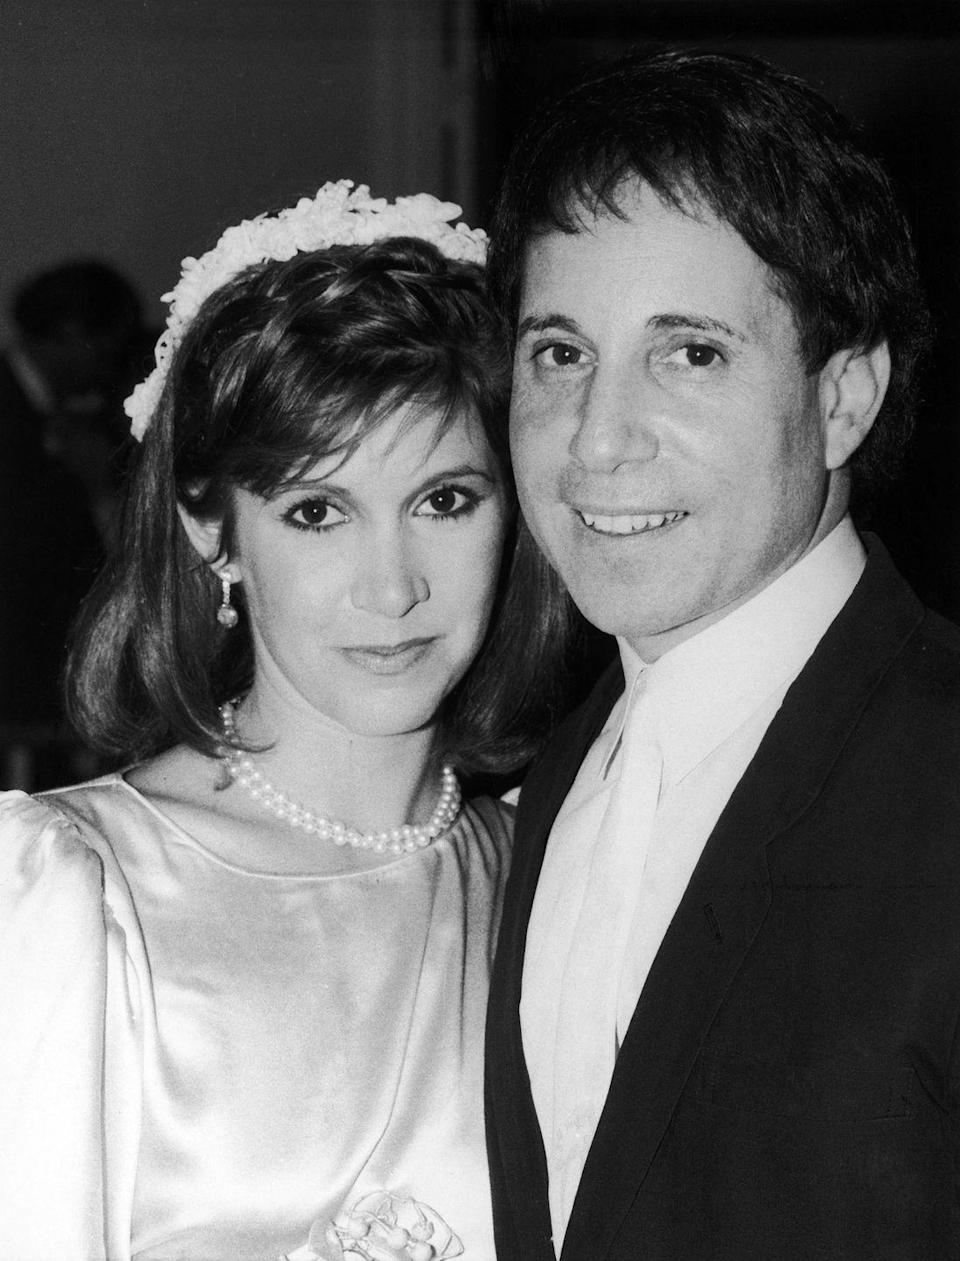 """<p>Late actress Carrie Fisher <a href=""""http://www.eonline.com/news/818391/carrie-fisher-s-ex-paul-simon-pays-tribute-to-her-after-her-death-inside-their-turbulent-relationship"""" rel=""""nofollow noopener"""" target=""""_blank"""" data-ylk=""""slk:married singer Paul Simon"""" class=""""link rapid-noclick-resp"""">married singer Paul Simon</a> in August 1983, only to get quickly divorced the next summer due to issues with substance abuse. The relationship between the two was turbulent, and they continued to date on-and-off after their divorce. </p>"""